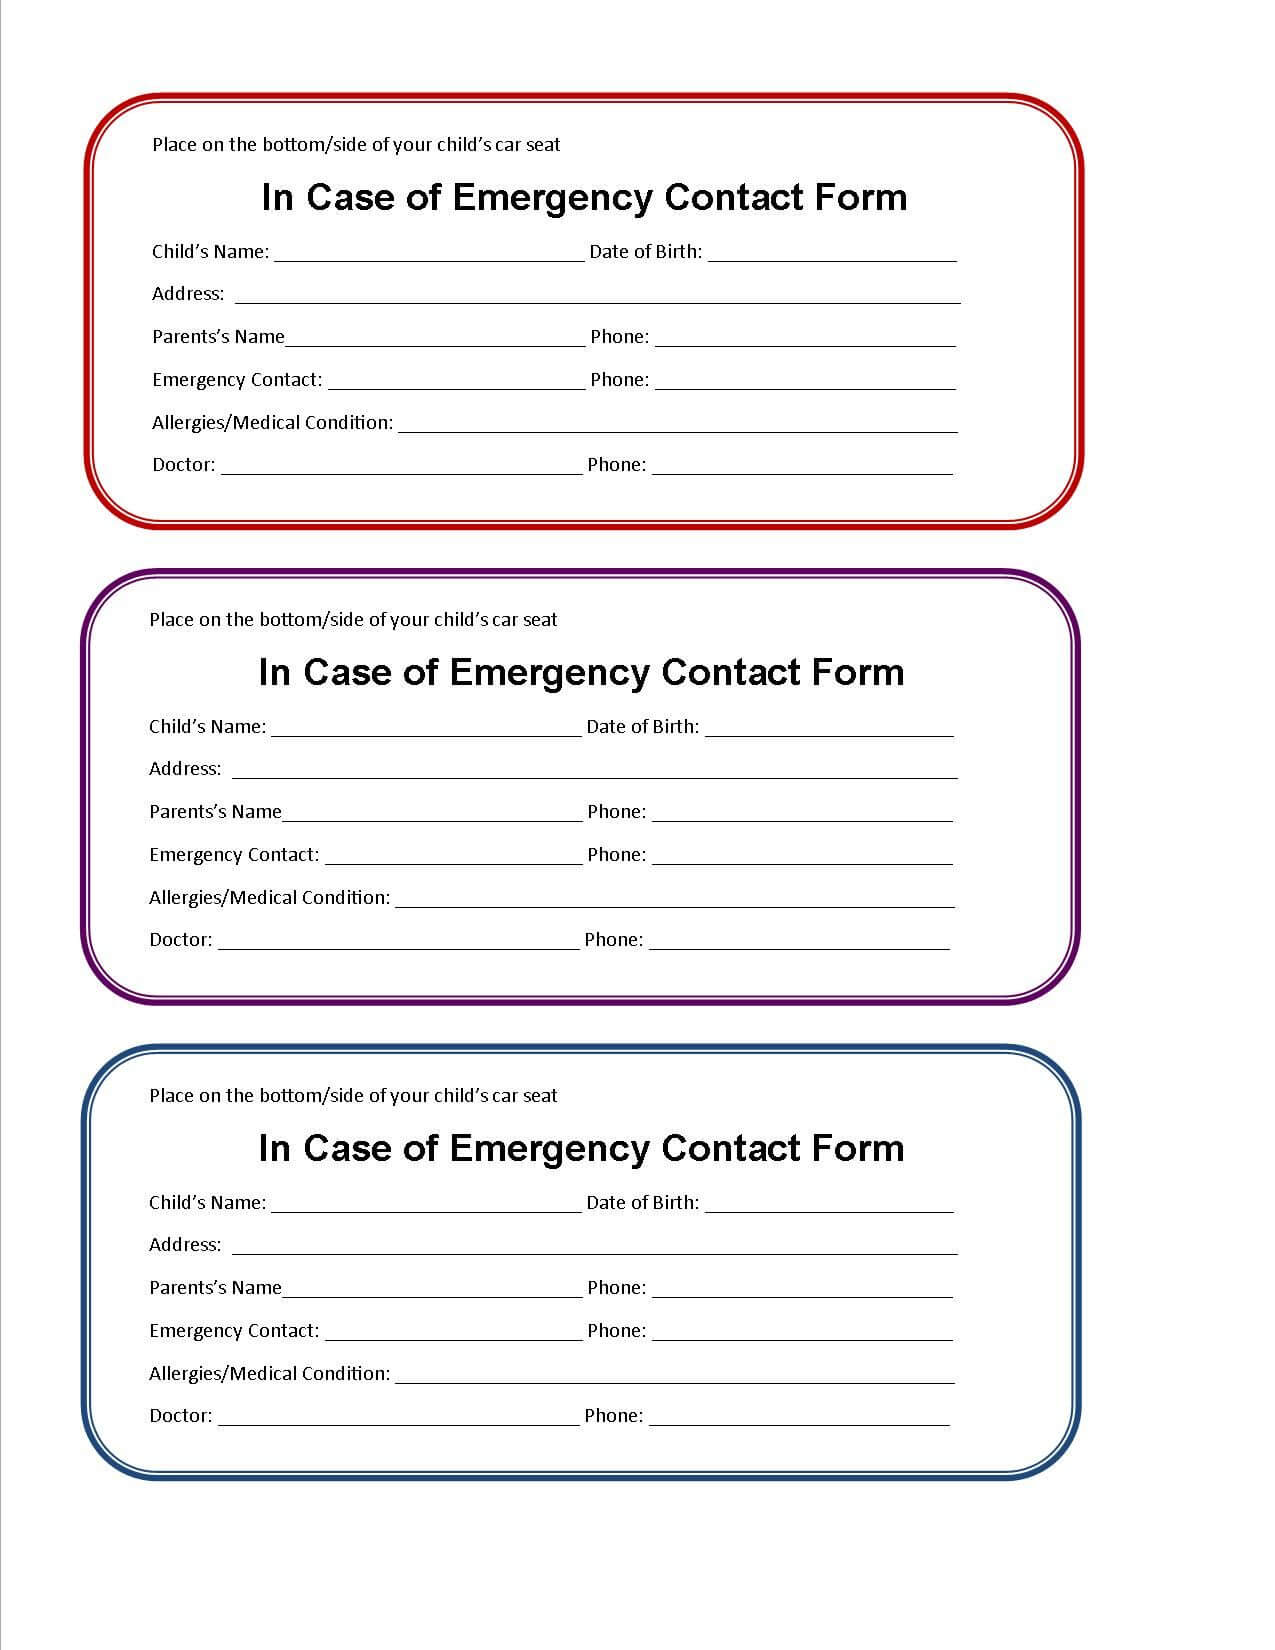 Printable Emergency Contact Form For Car Seat | Super Mom I Throughout Emergency Contact Card Template